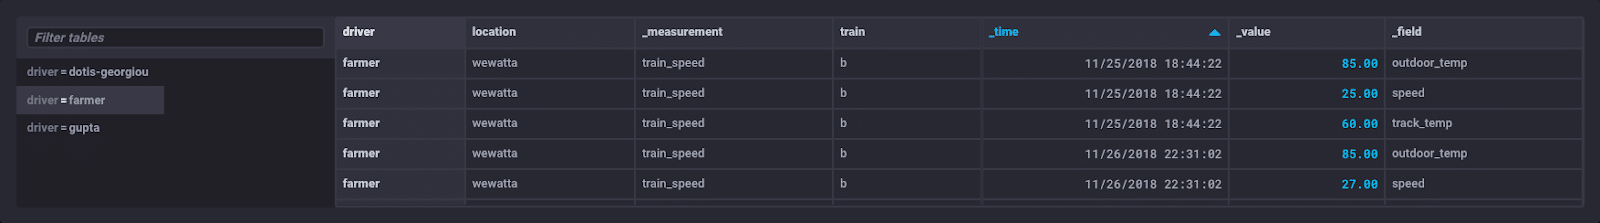 InfluxDB: Reorganizing Data with the Pivot Function in Flux